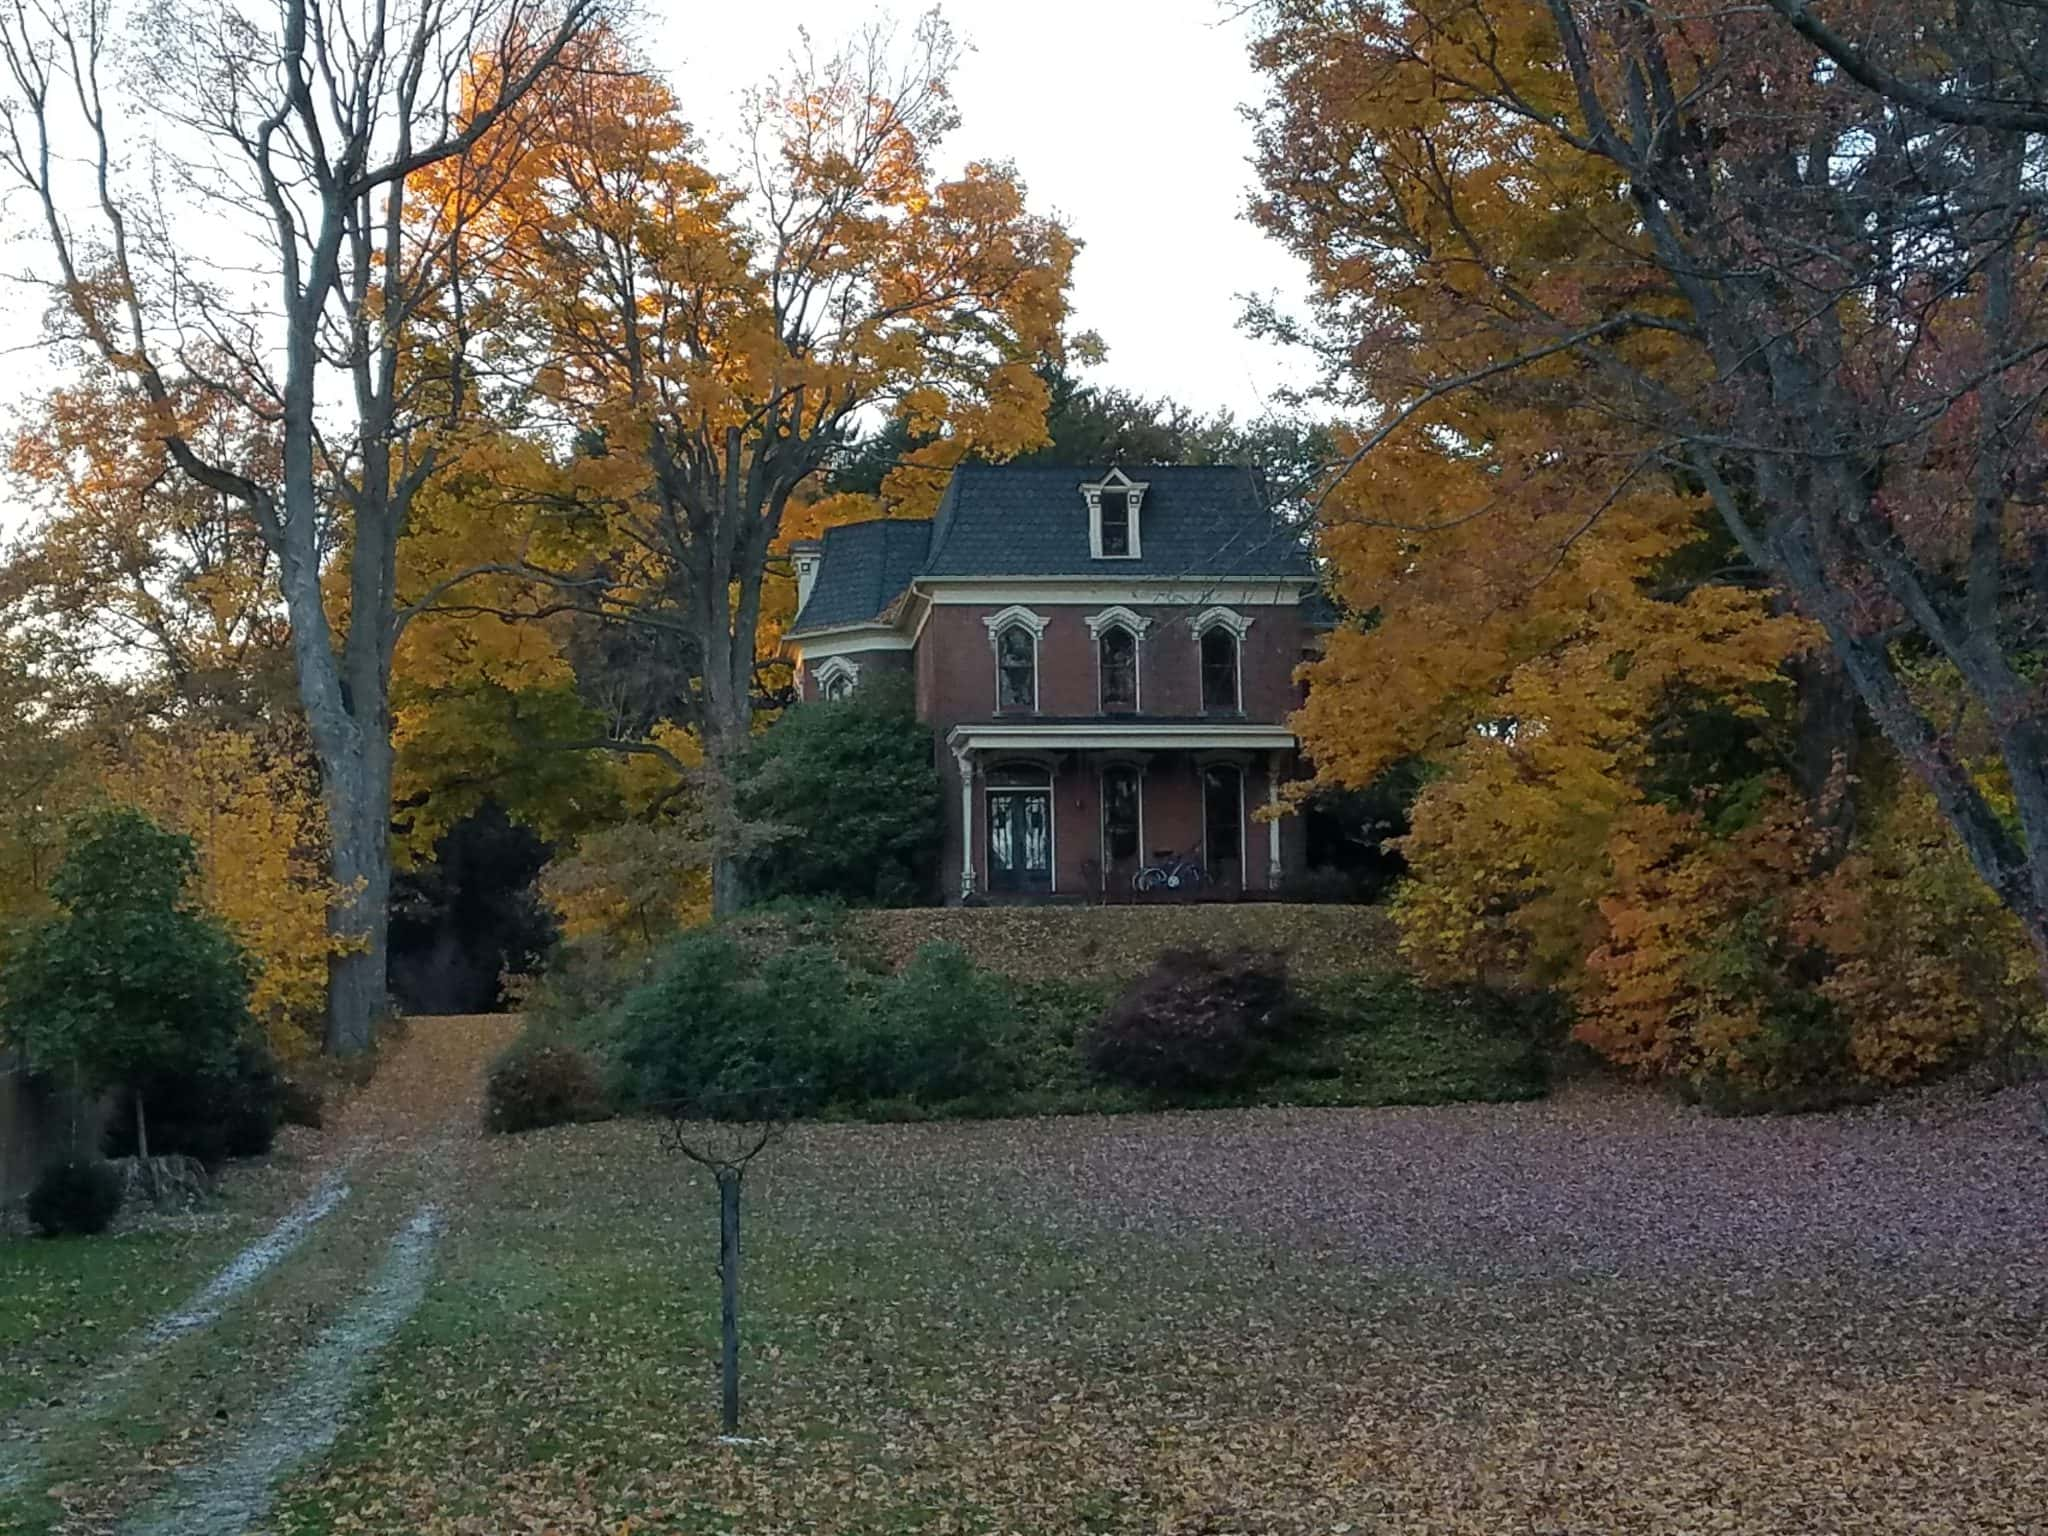 A late 1800s home, many homes like this exist in the areas surround Akron and Cleveland.